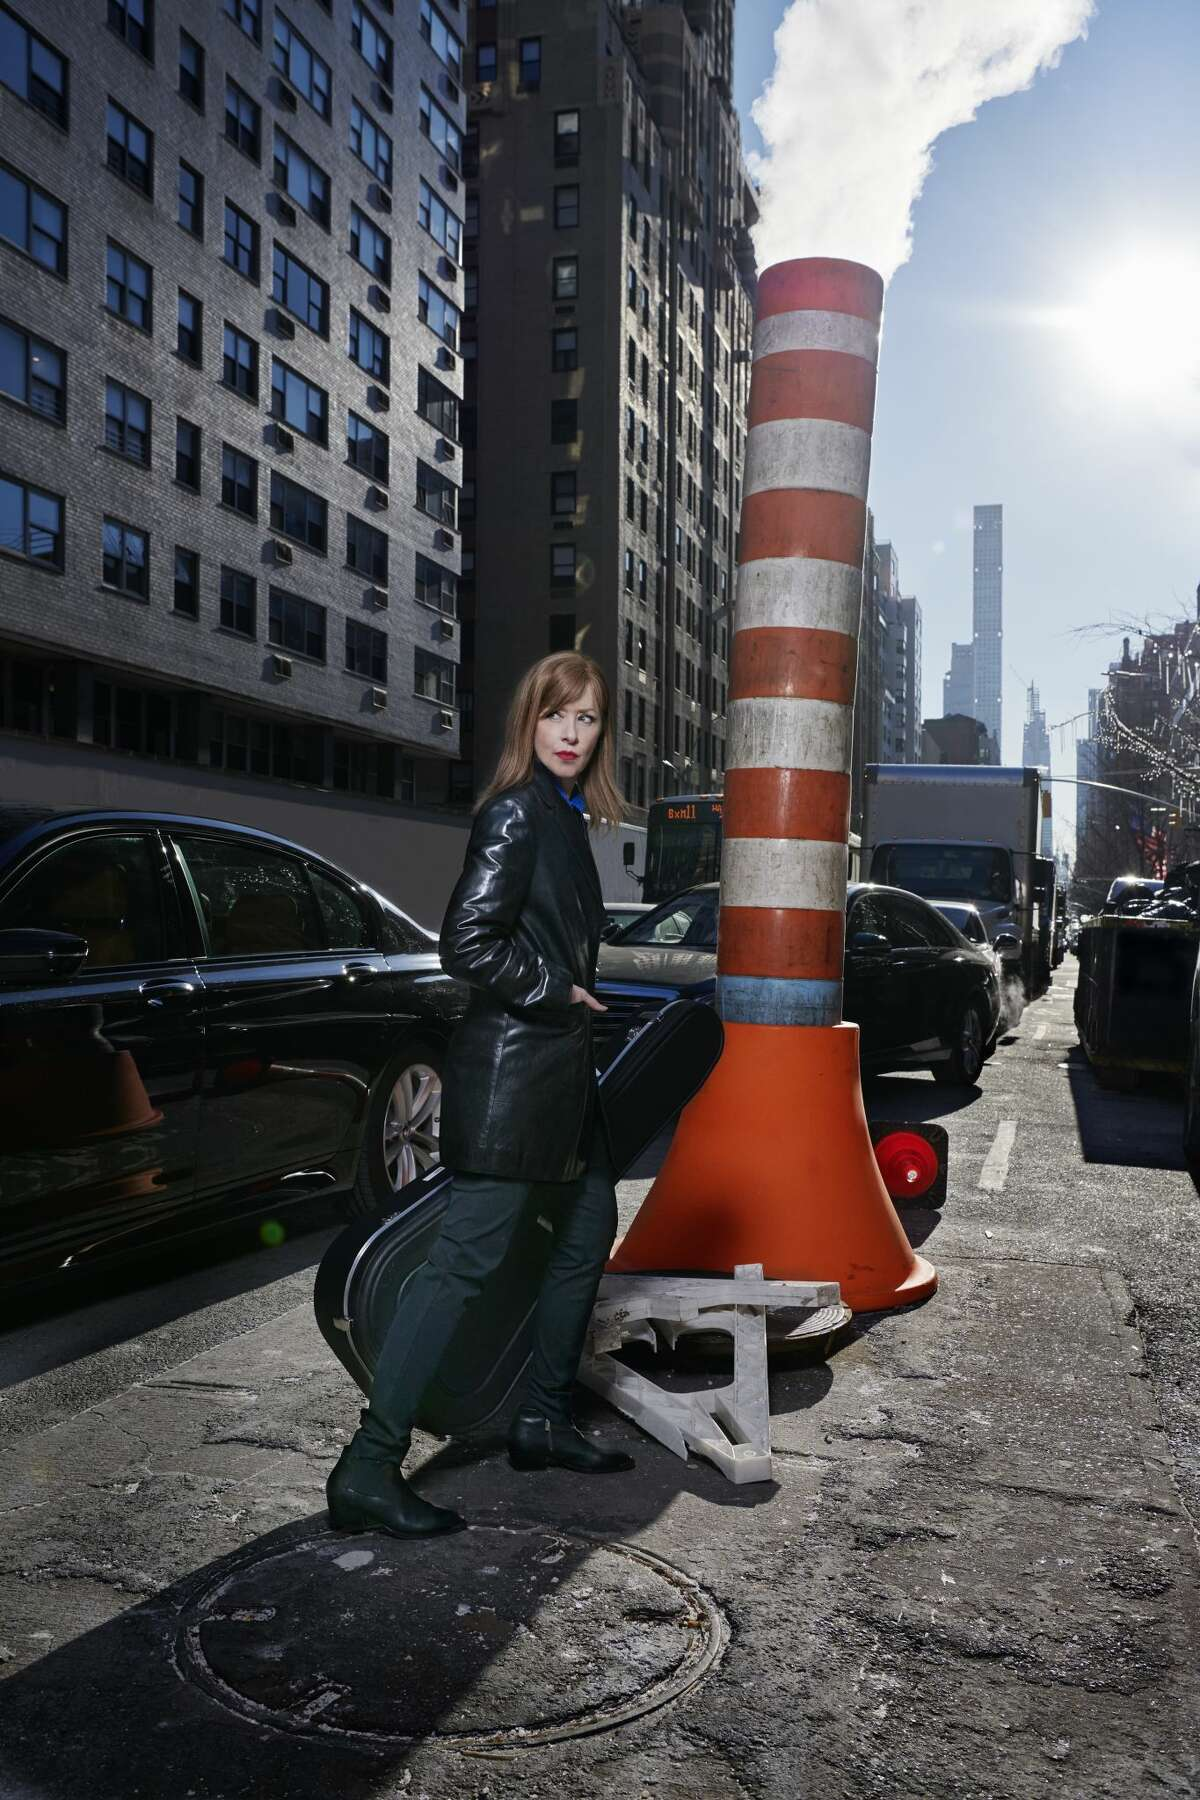 The set list for Suzanne Vega's show celebrating New York includes her classics as well as other hidden gems. Vega punctuates the setlist with the stories behind these songs.